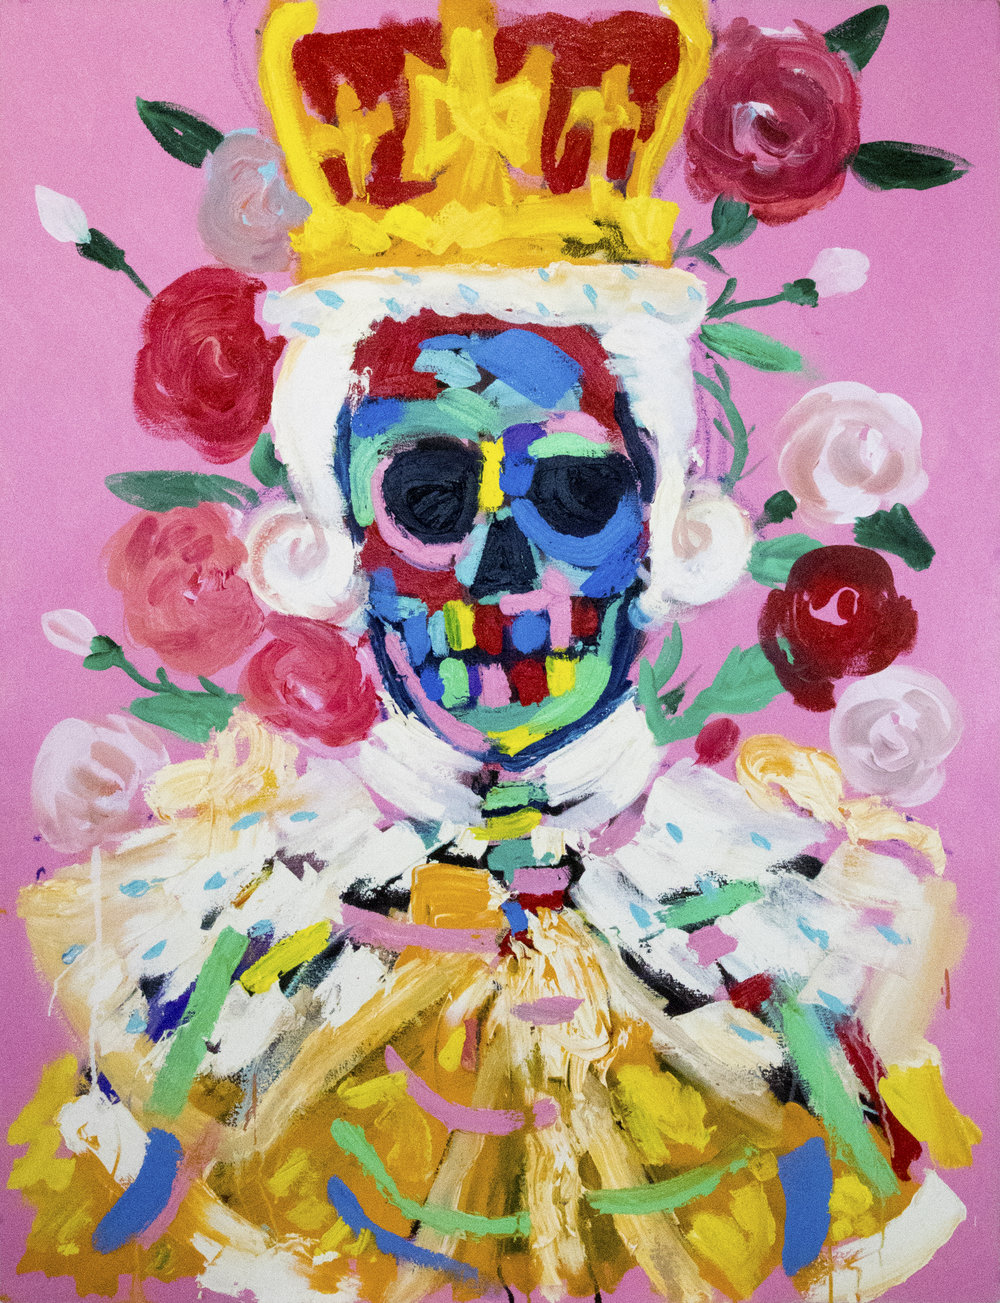 Maddox Gallery Presents The Coronation With A Bradley Theodore The Mayfair Musings